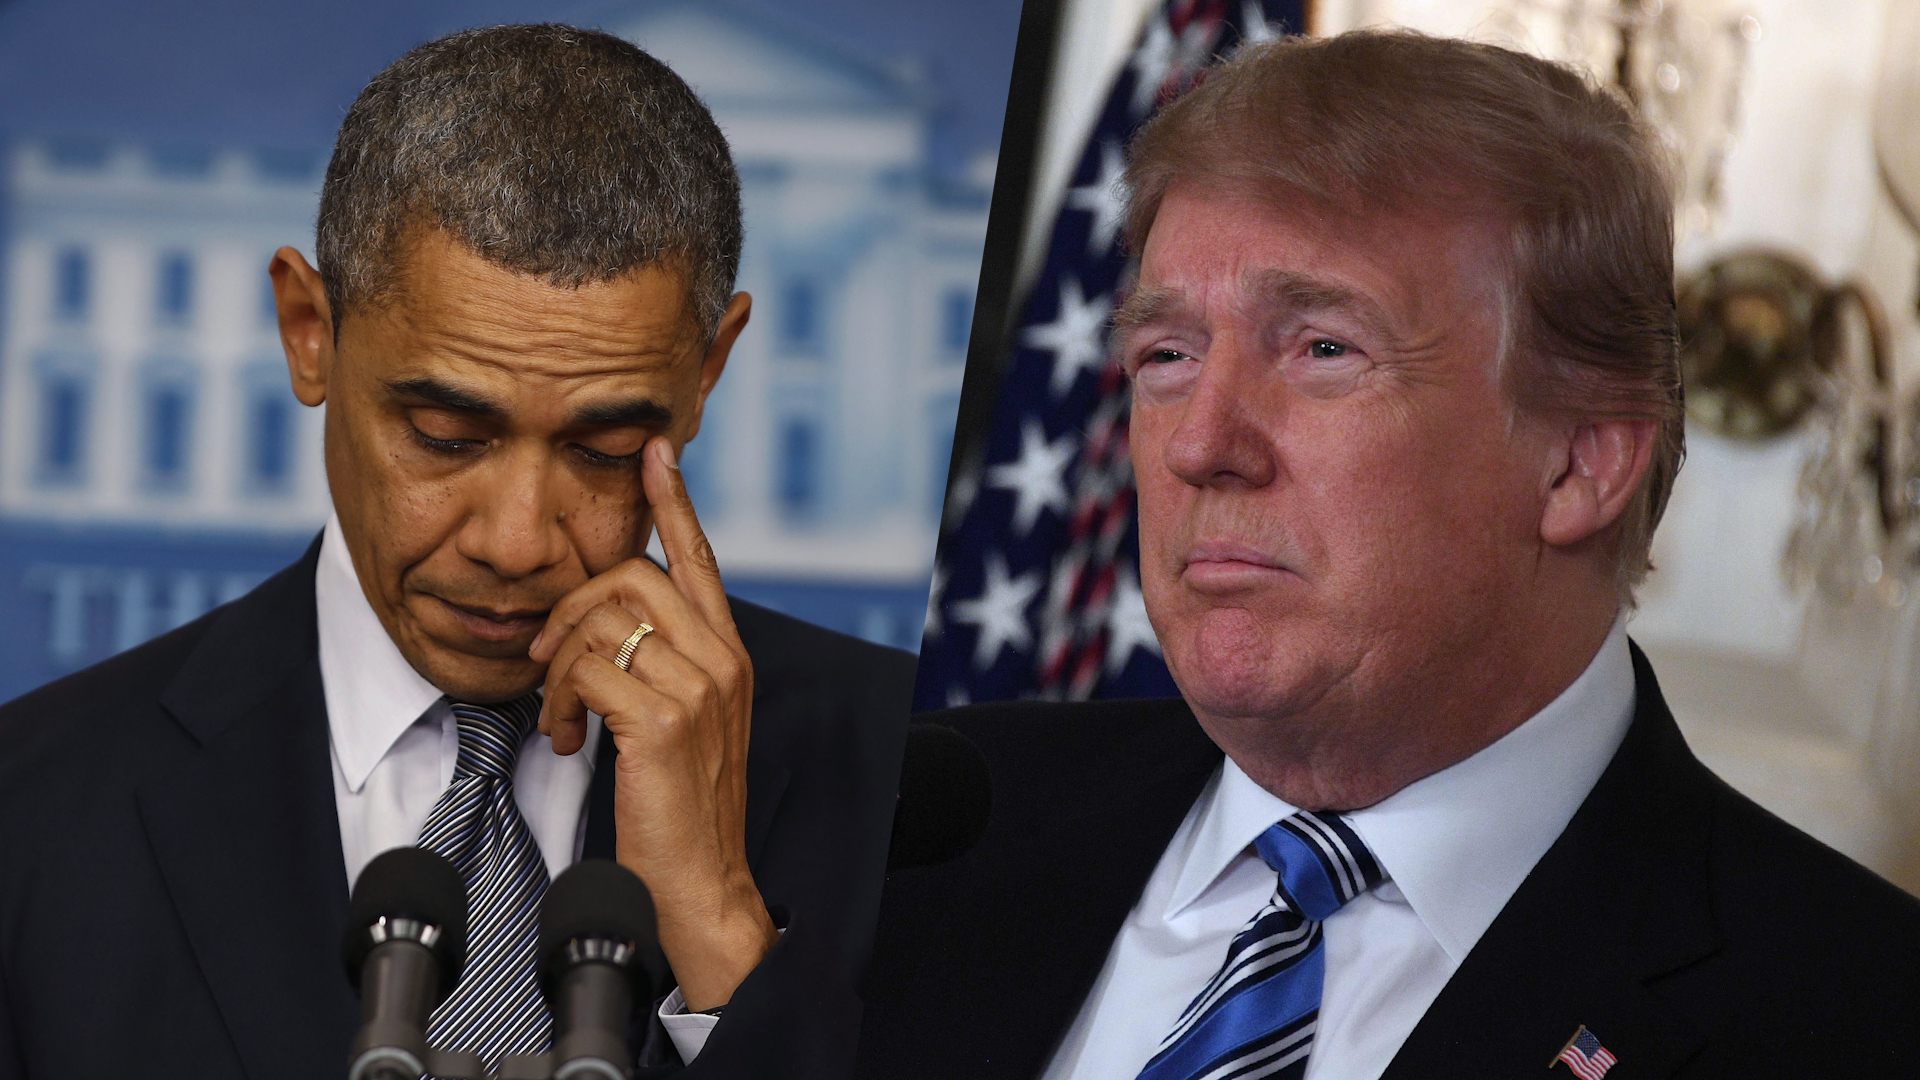 Obama ran out of words on mass shootings. Trump has struggled to find them.